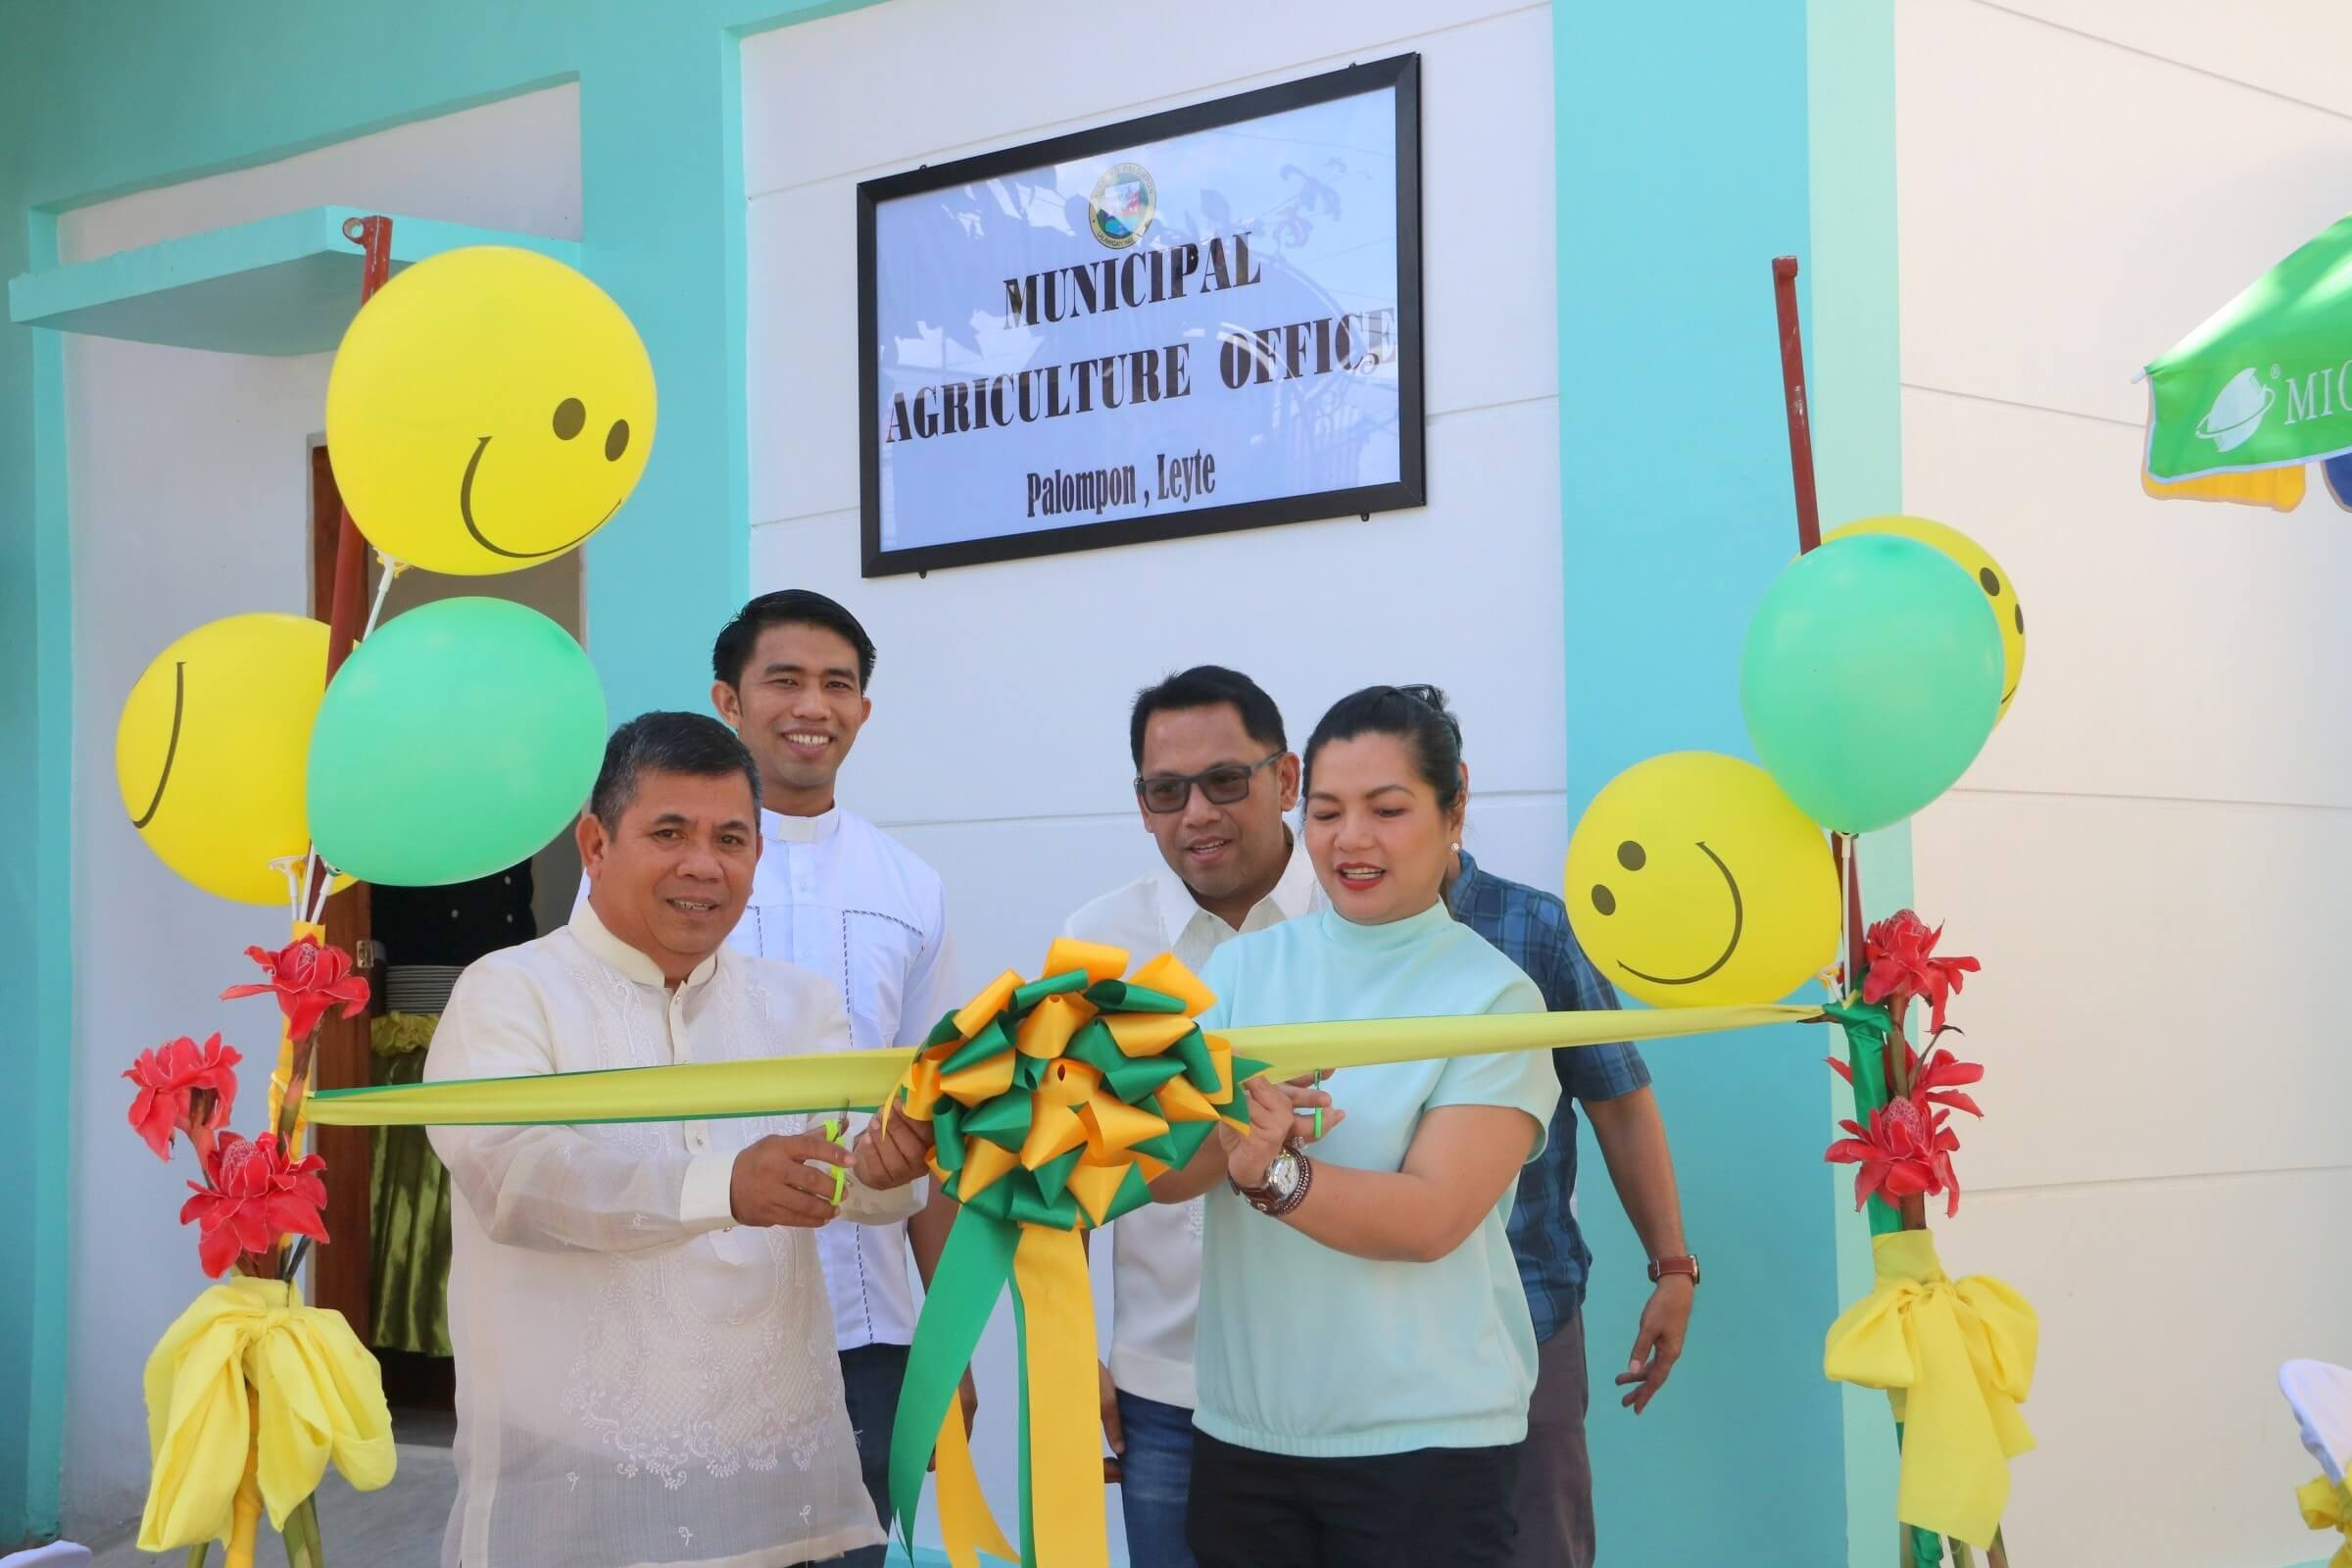 Thanks Giving & Blessing of New Municipal Agriculture Office